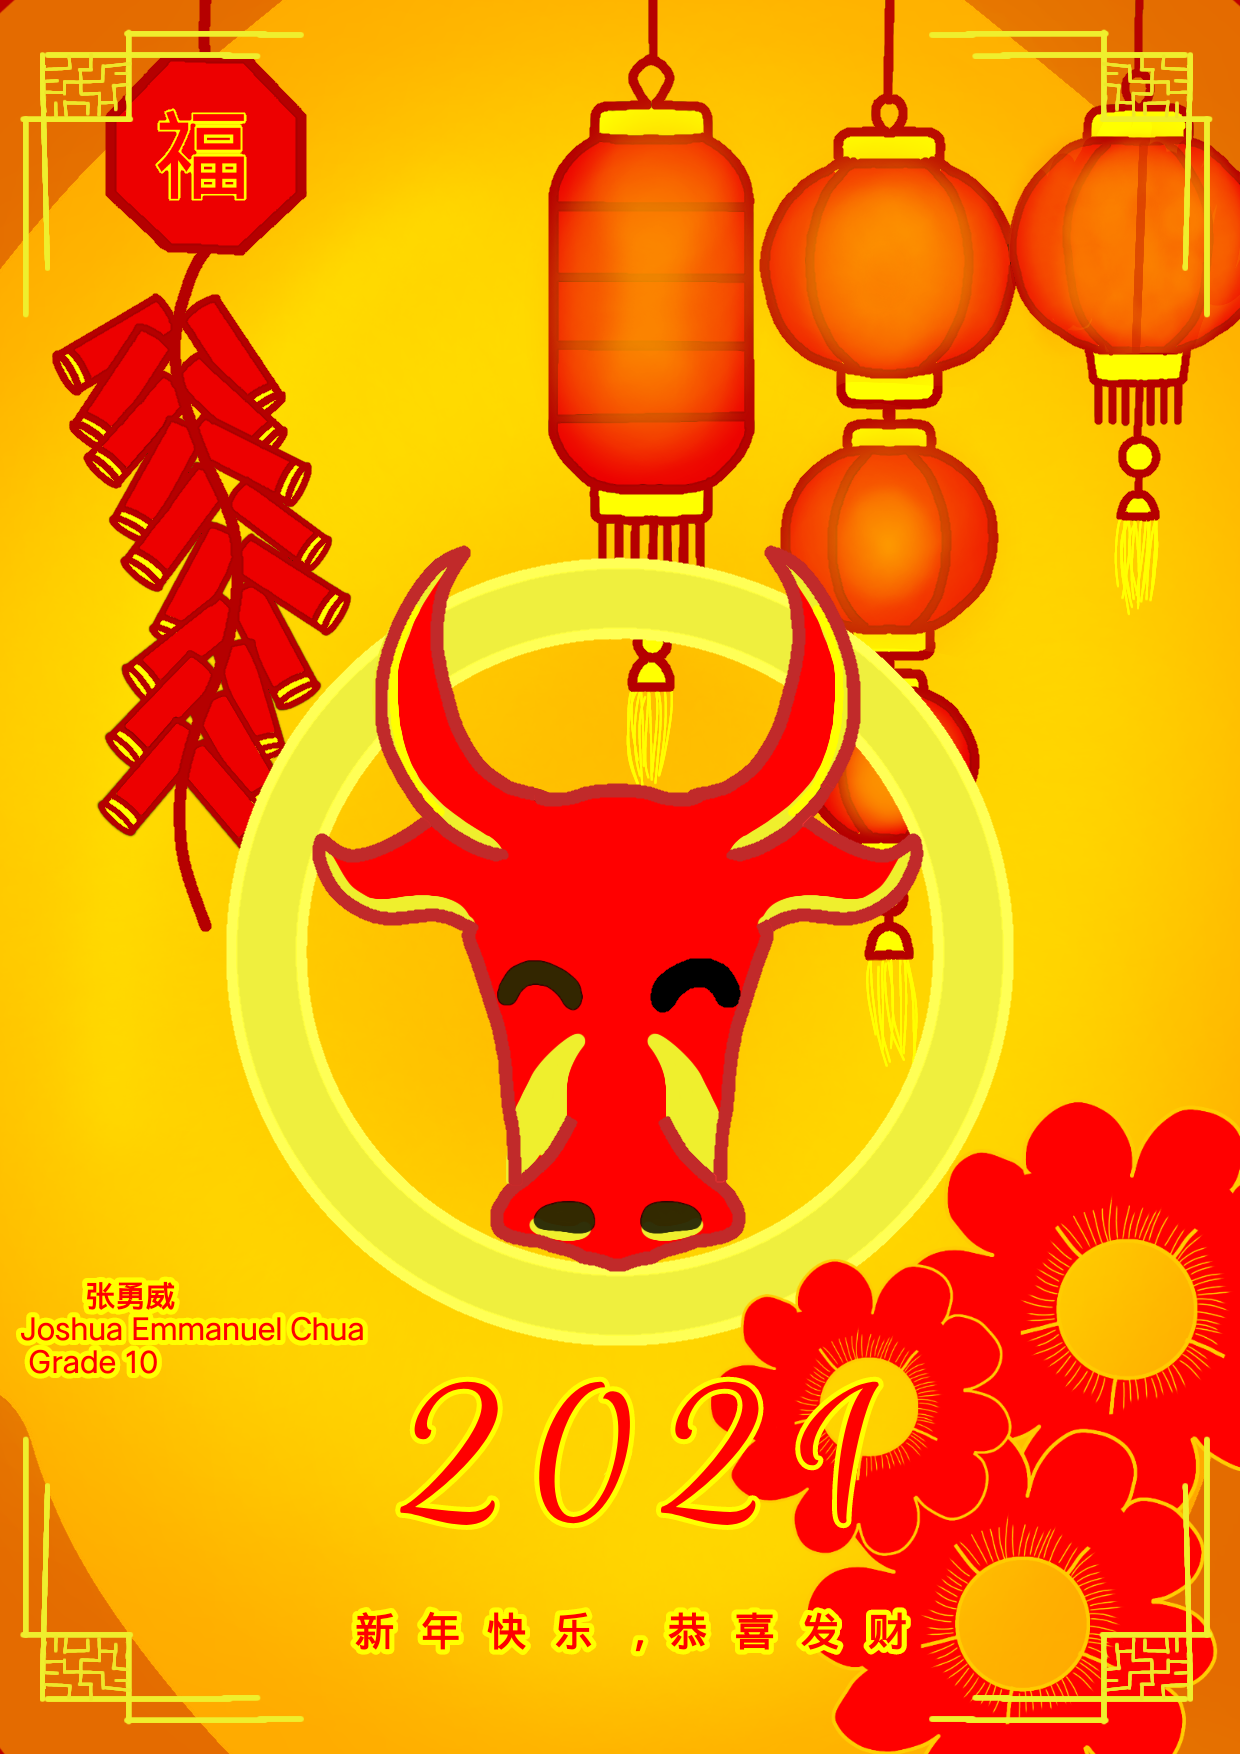 D:\ROBBY PERSONAL FILES 2013\RMA FILES\Childlink Learning Center & Childlink High School, Inc\PR 3 - CHINESE\D.png